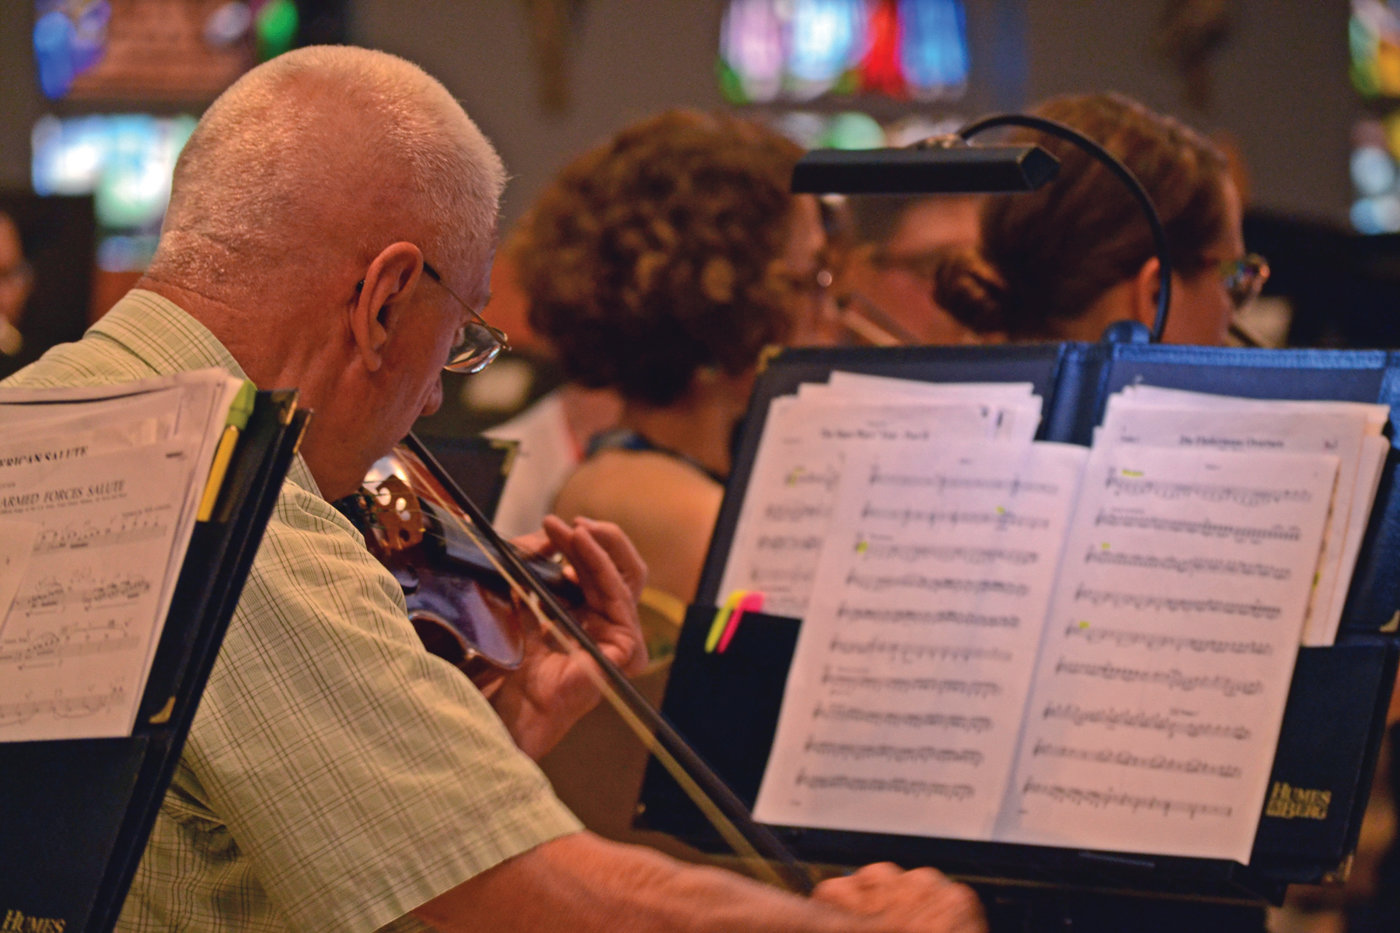 MIND THE NOTES: Violinist Jerry Lupien paid keen attention to his sheet music while practicing with the Ocean State Pops.